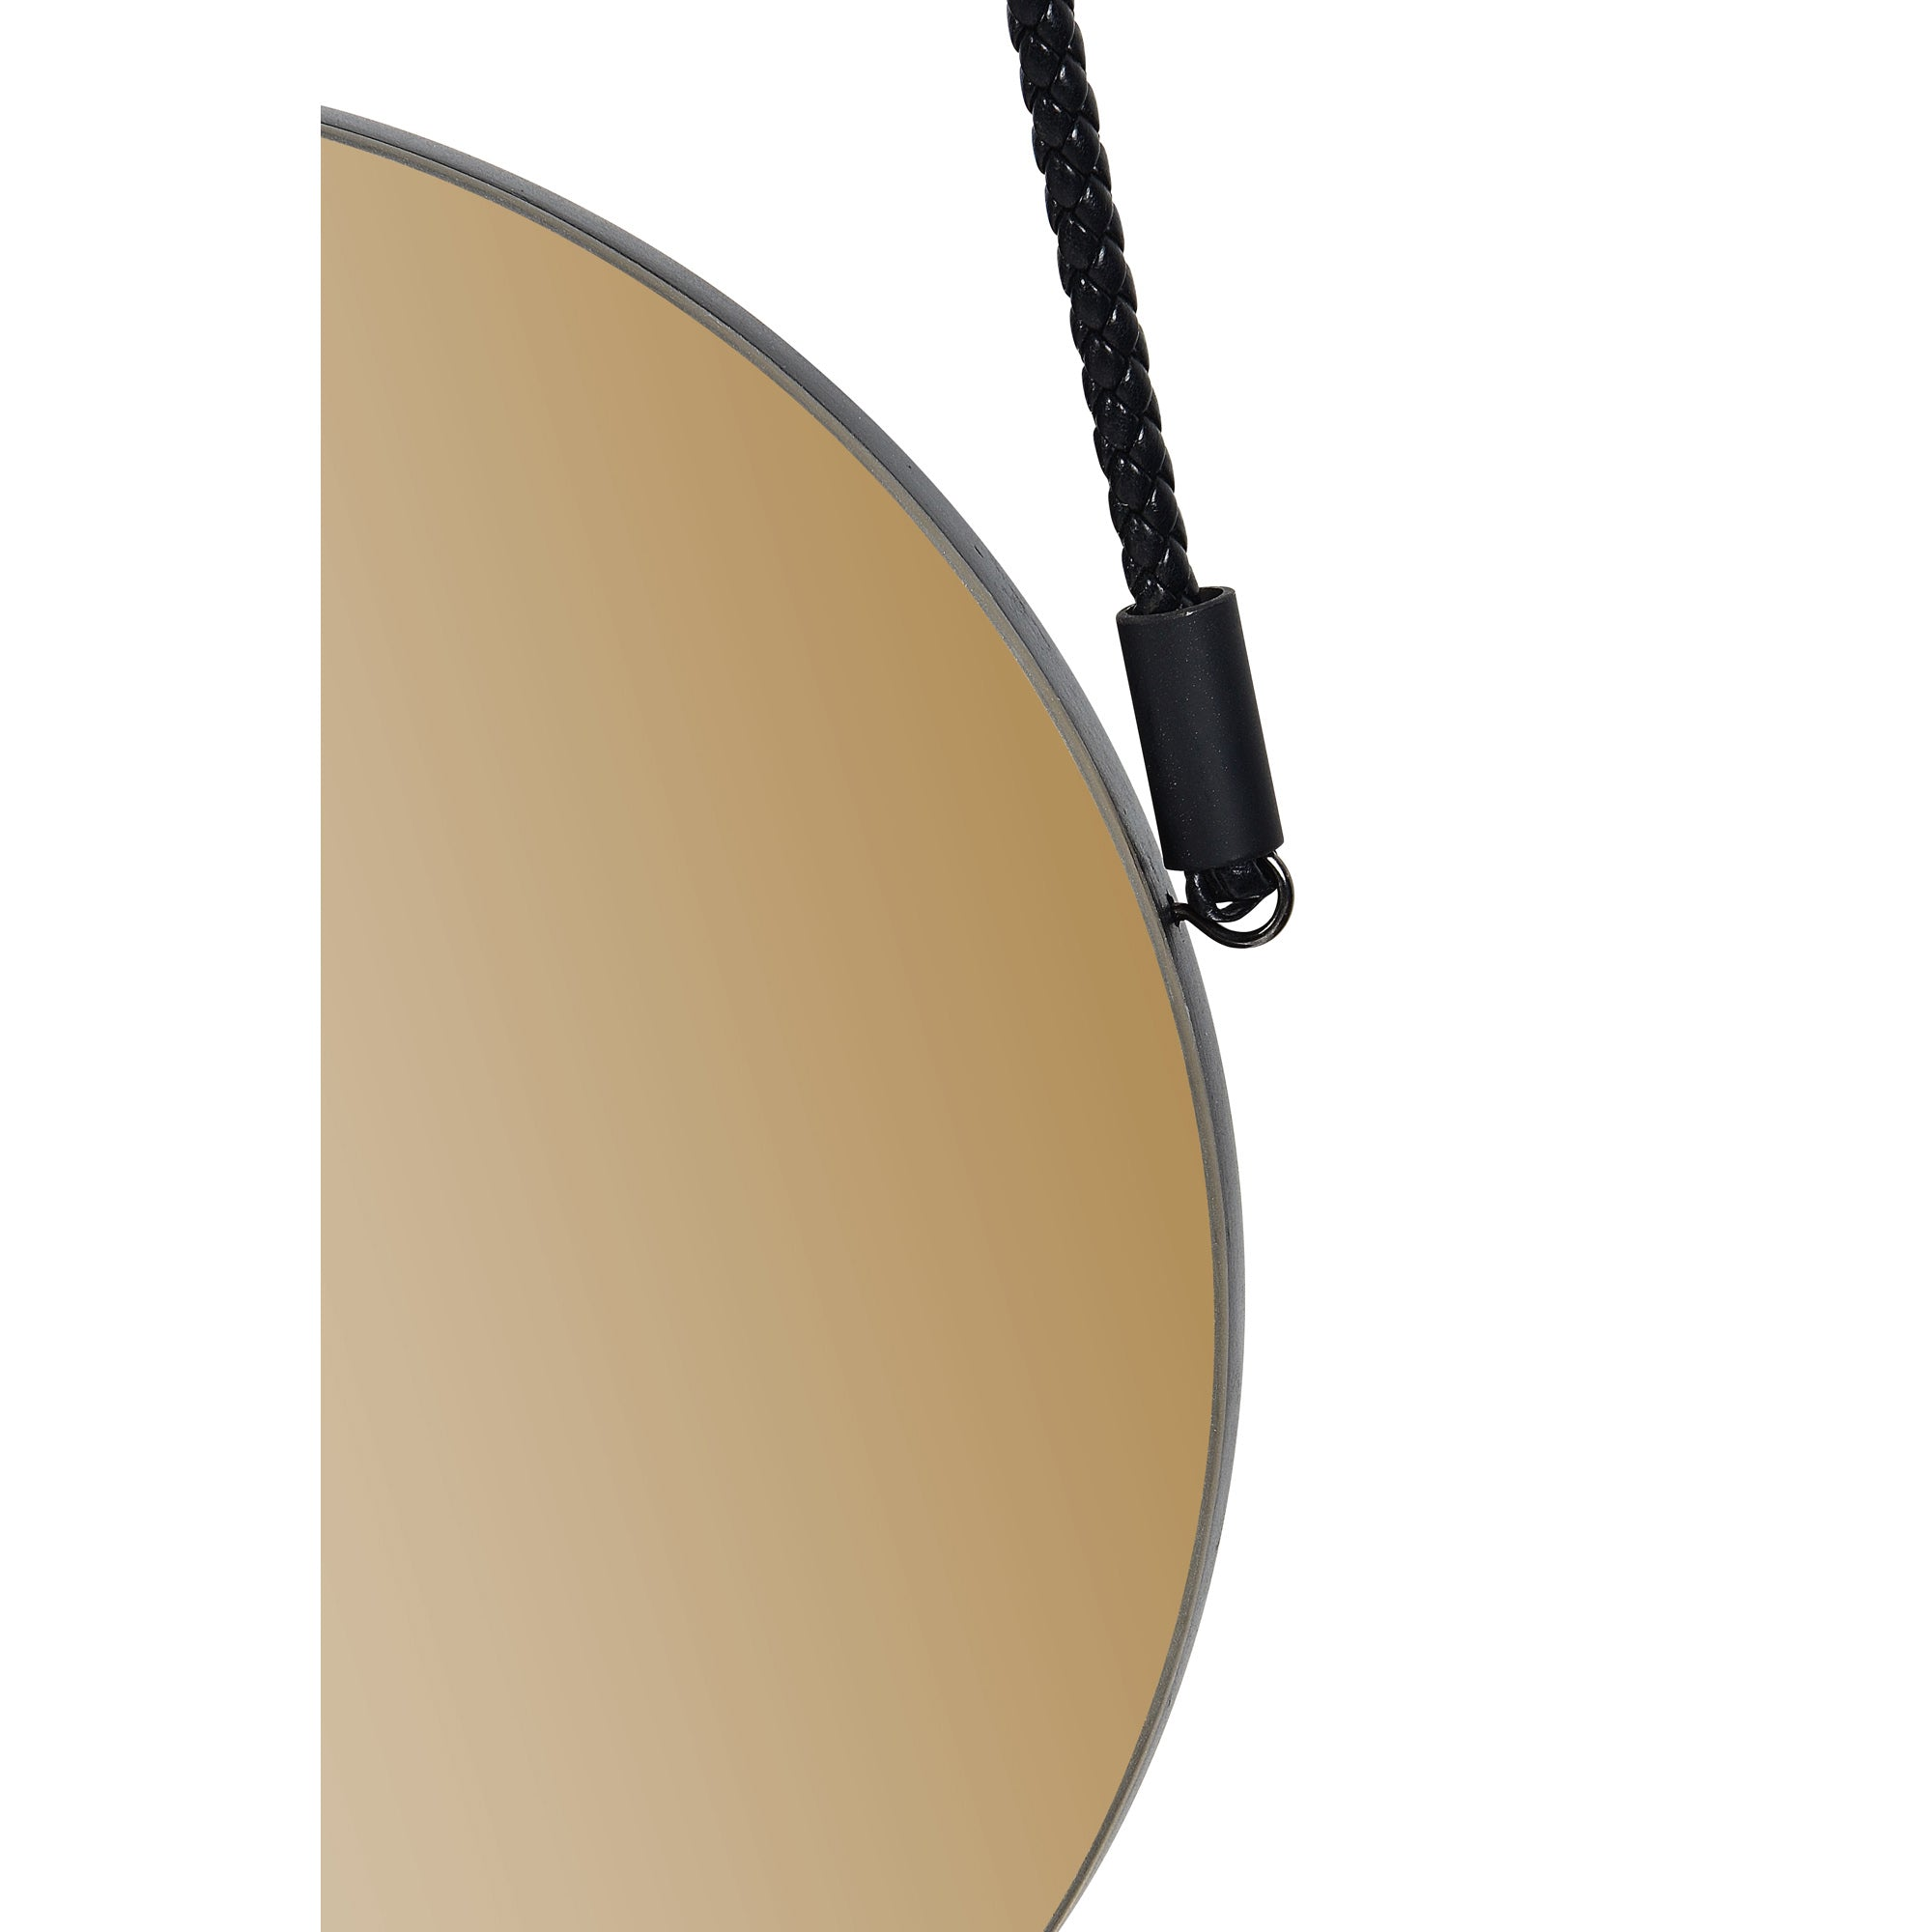 Bight Iron Black Powder Double Wall Mirror - Coated Finish - Smoked Amber - Tinted Mirror - Decorative Braided - Strap & Hook